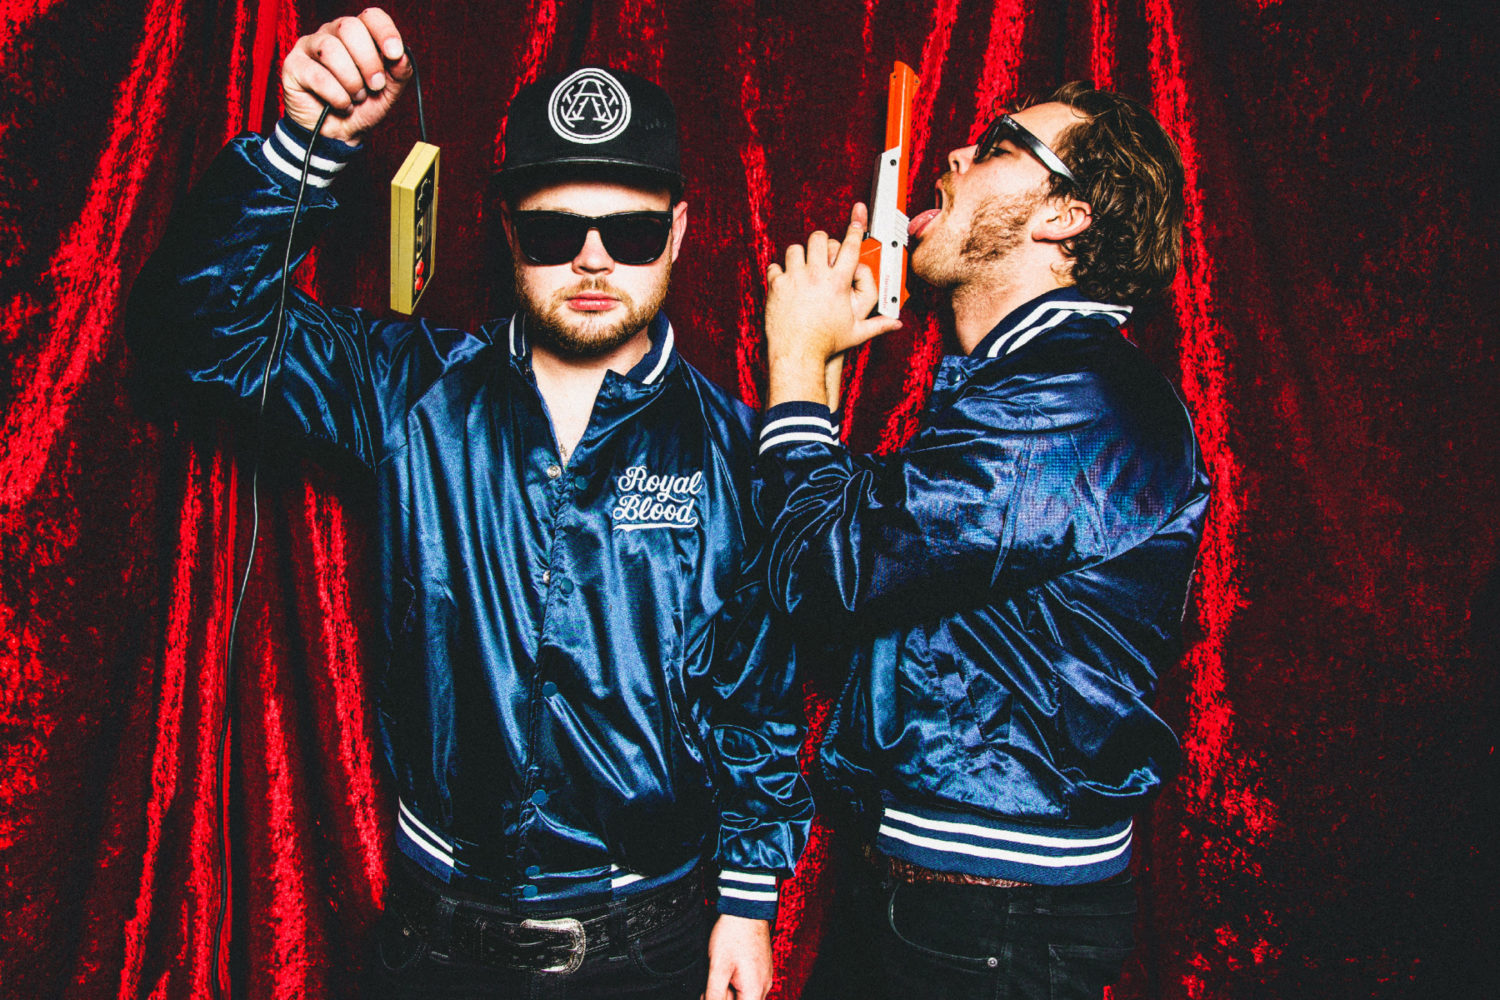 Royal Blood to release 'Trouble's Coming' this week